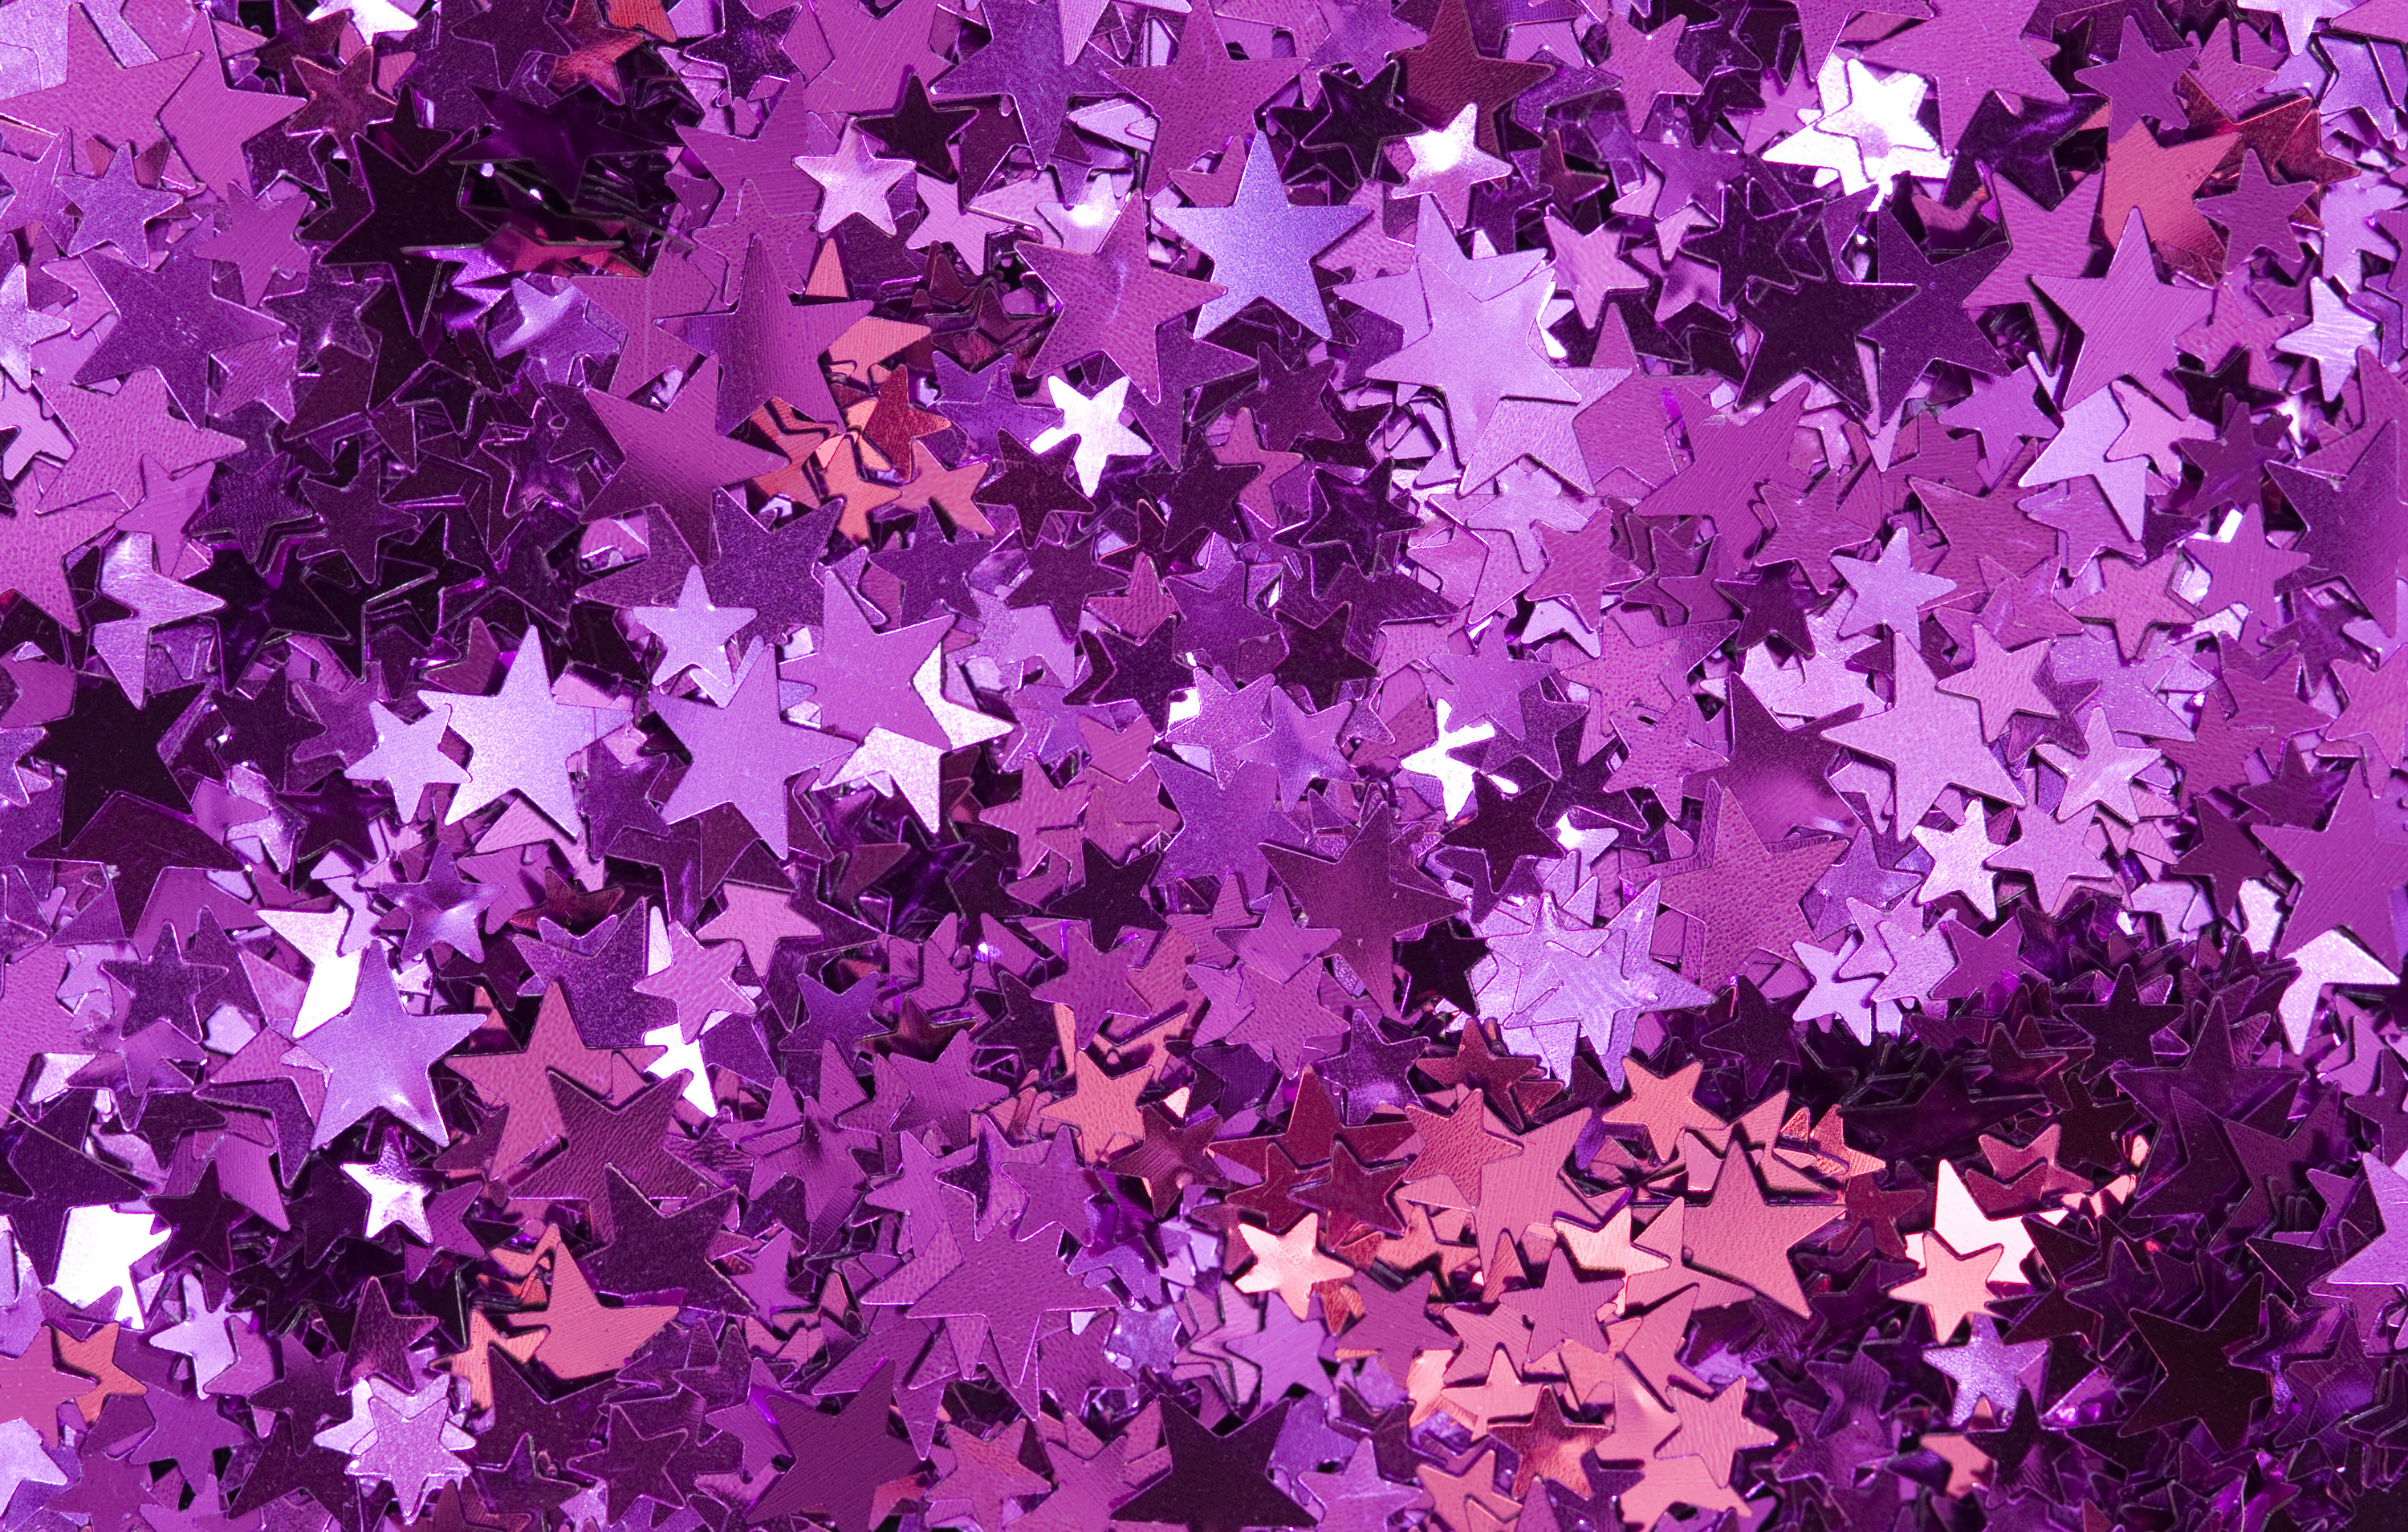 Free stock photo 3623 metallic star background freeimageslive a colorful pink backdrop of metallic confetti star shapes thecheapjerseys Gallery